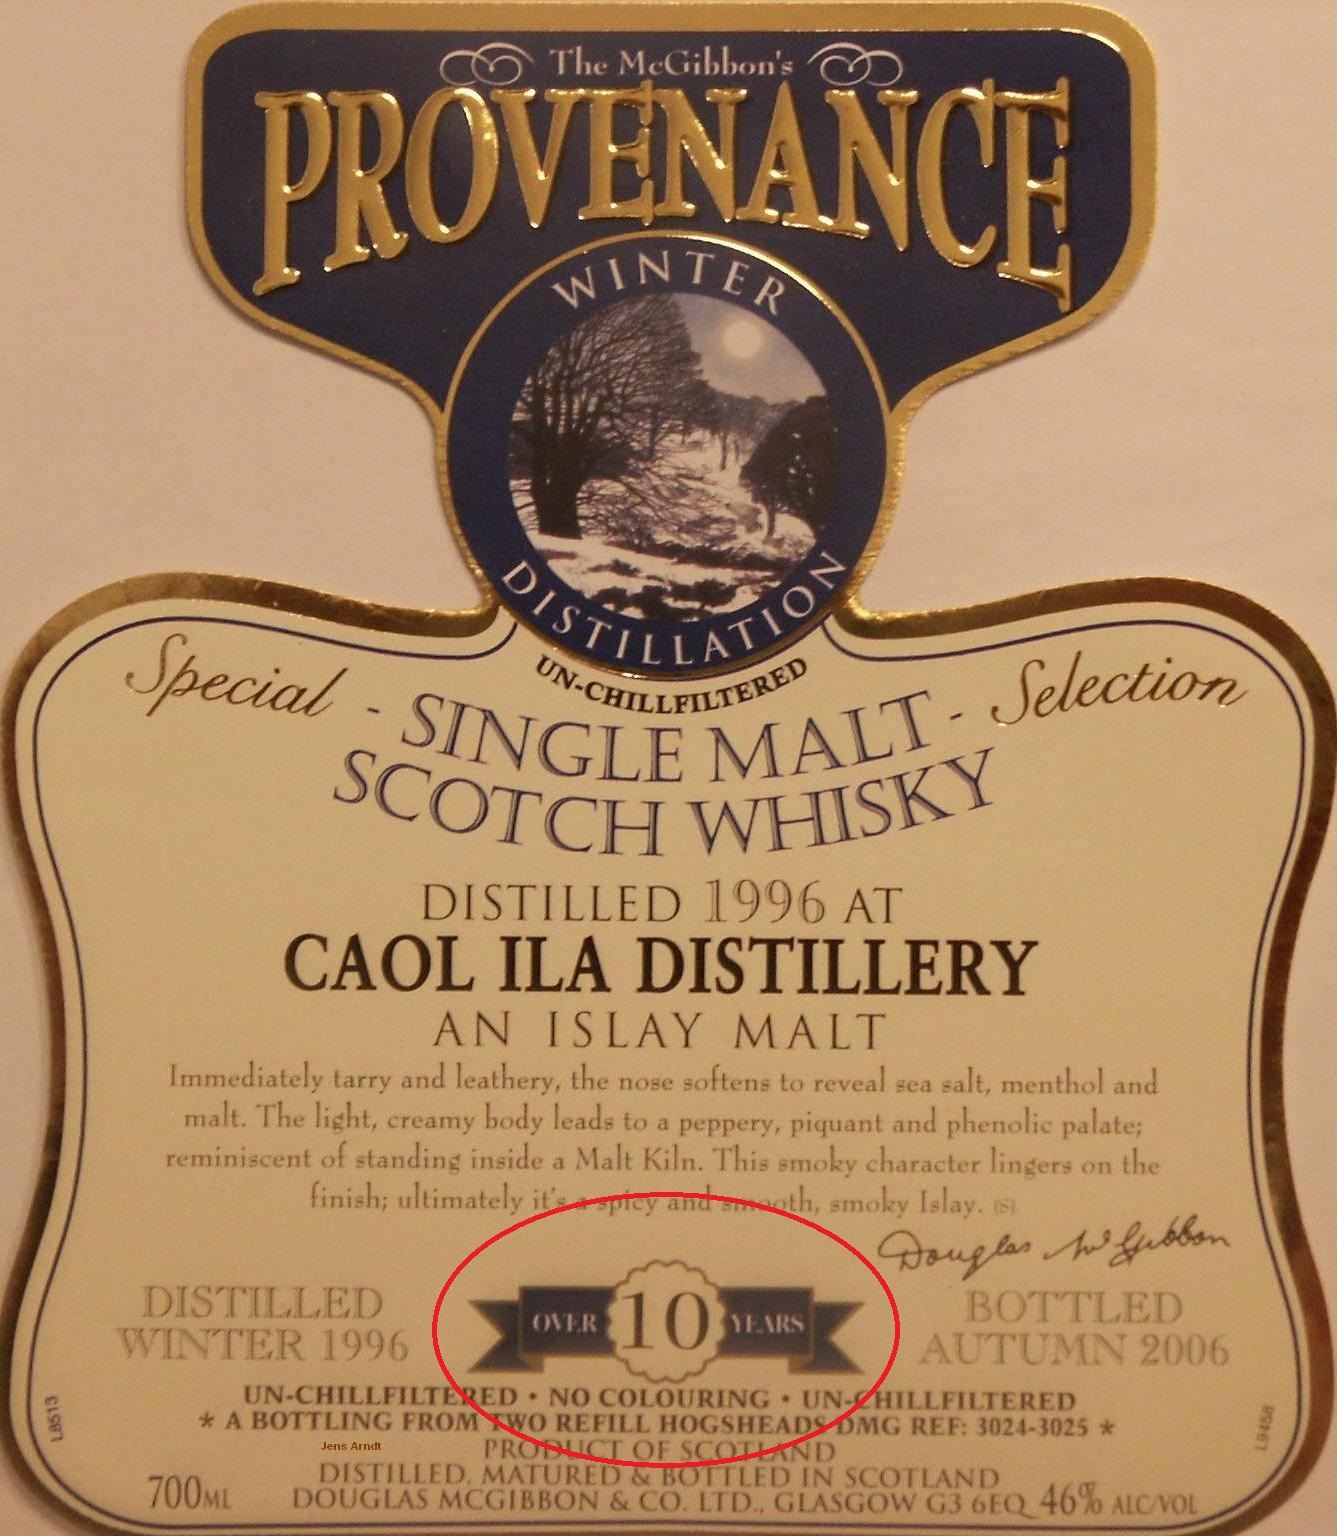 2005 - 2008  Speciales Provenance Whisky Label